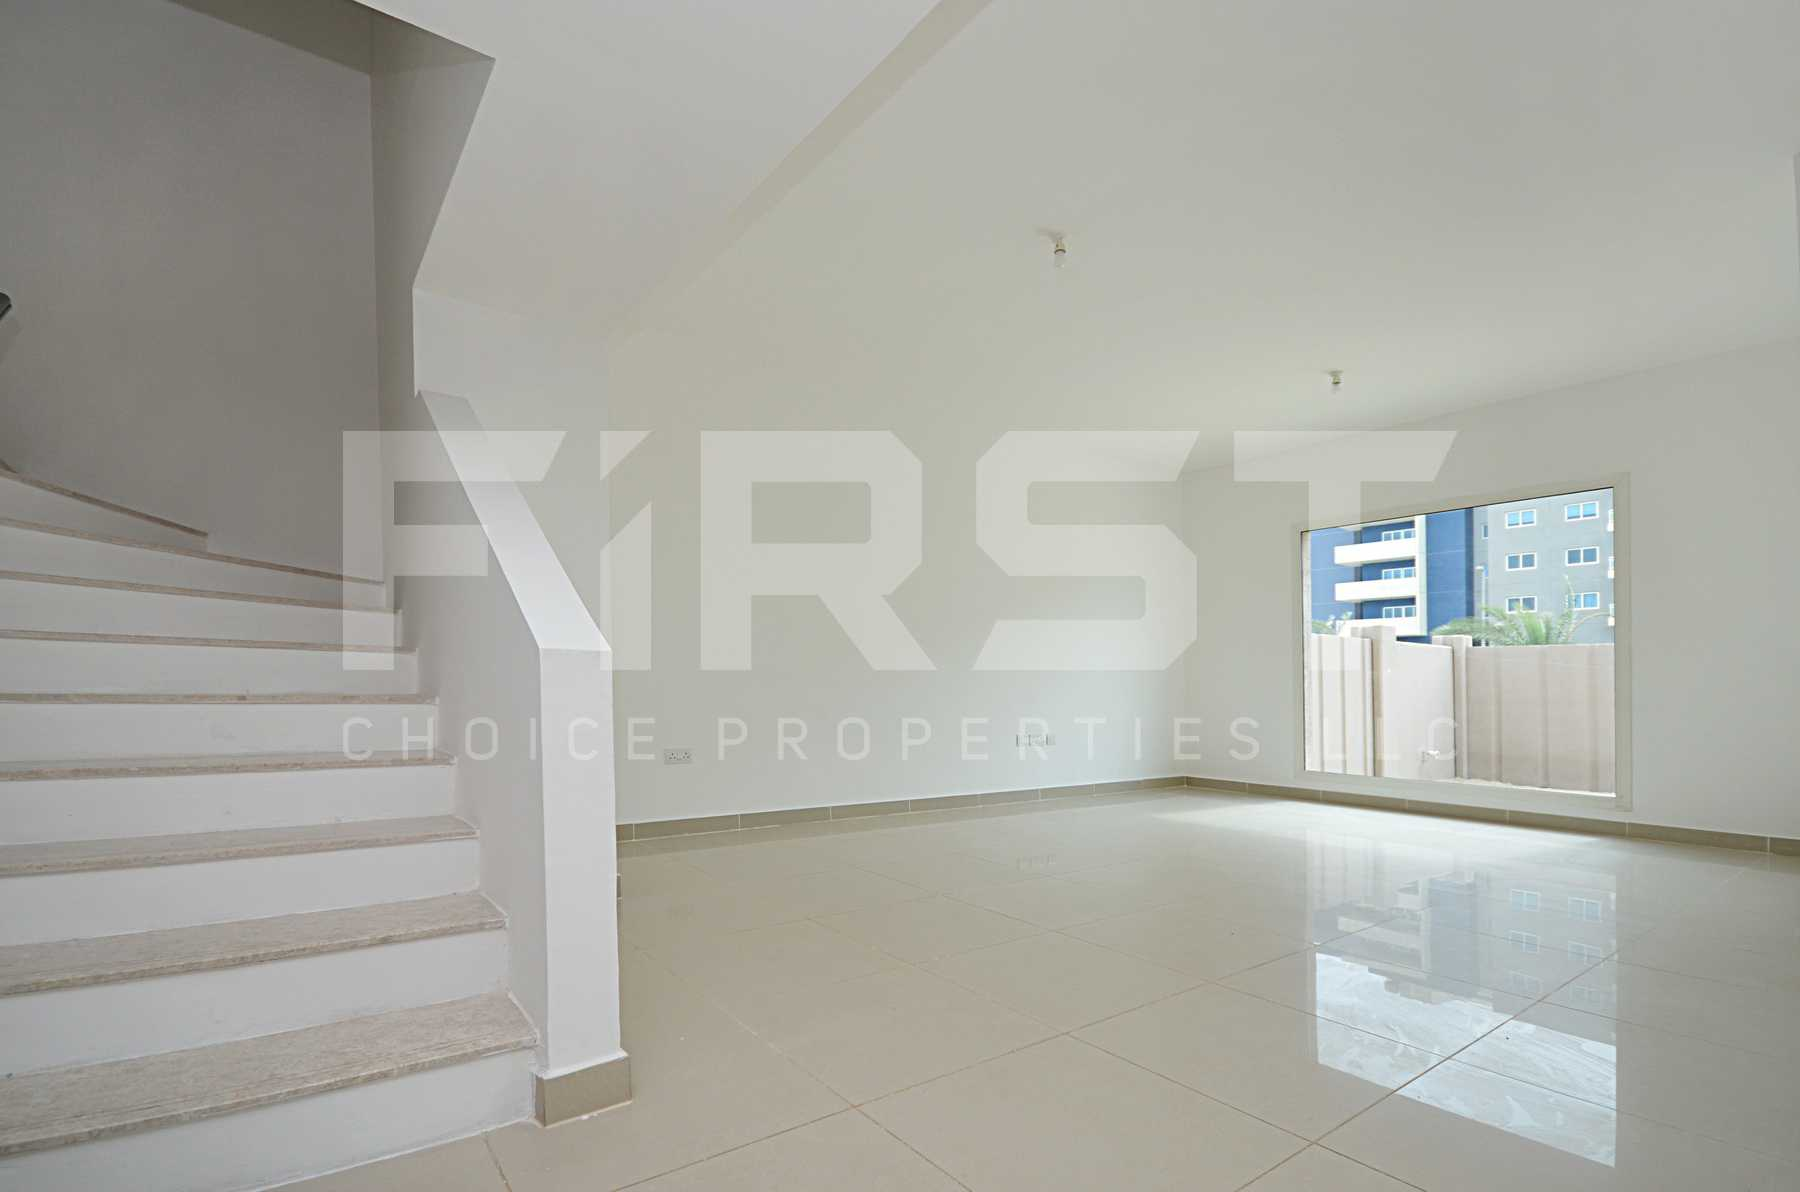 Internal Photo of 4 Bedroom Villa in Al Reef Villas Al Reef Abu Dhabi UAE 265.5 sq.m 2858 sq.ft (45).jpg